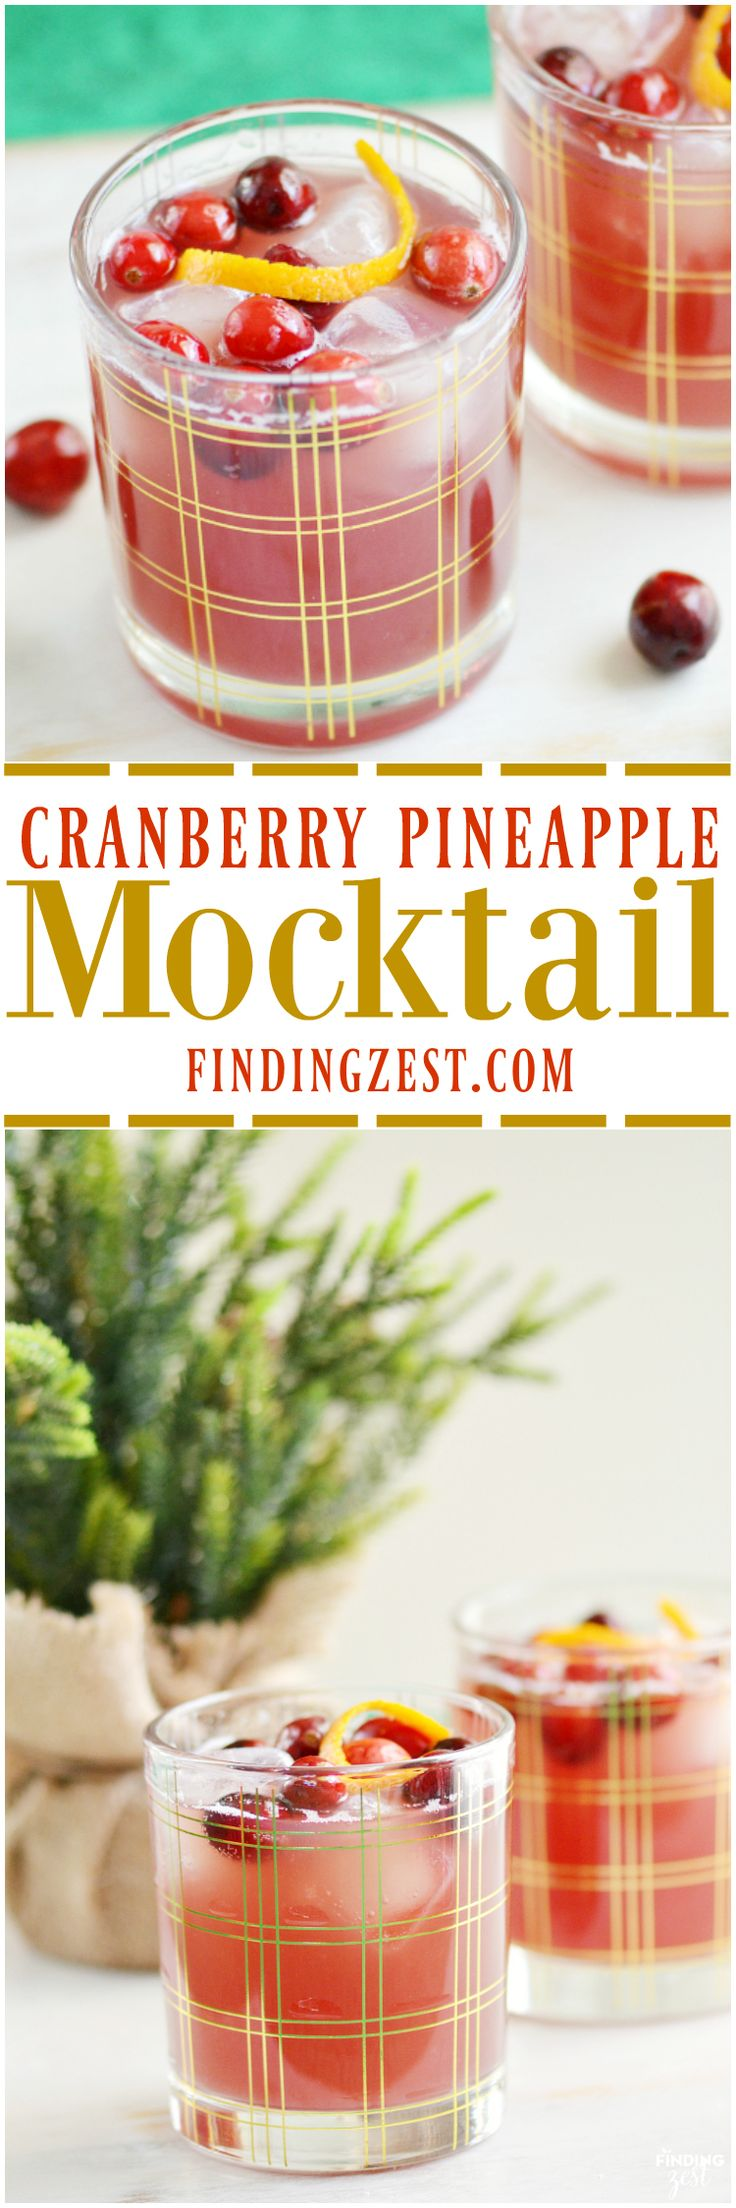 This Cranberry Pineapple Mocktail recipe is the perfect non-alcoholic holiday drink. Both kids and adults will love it for Christmas or New Years Eve!